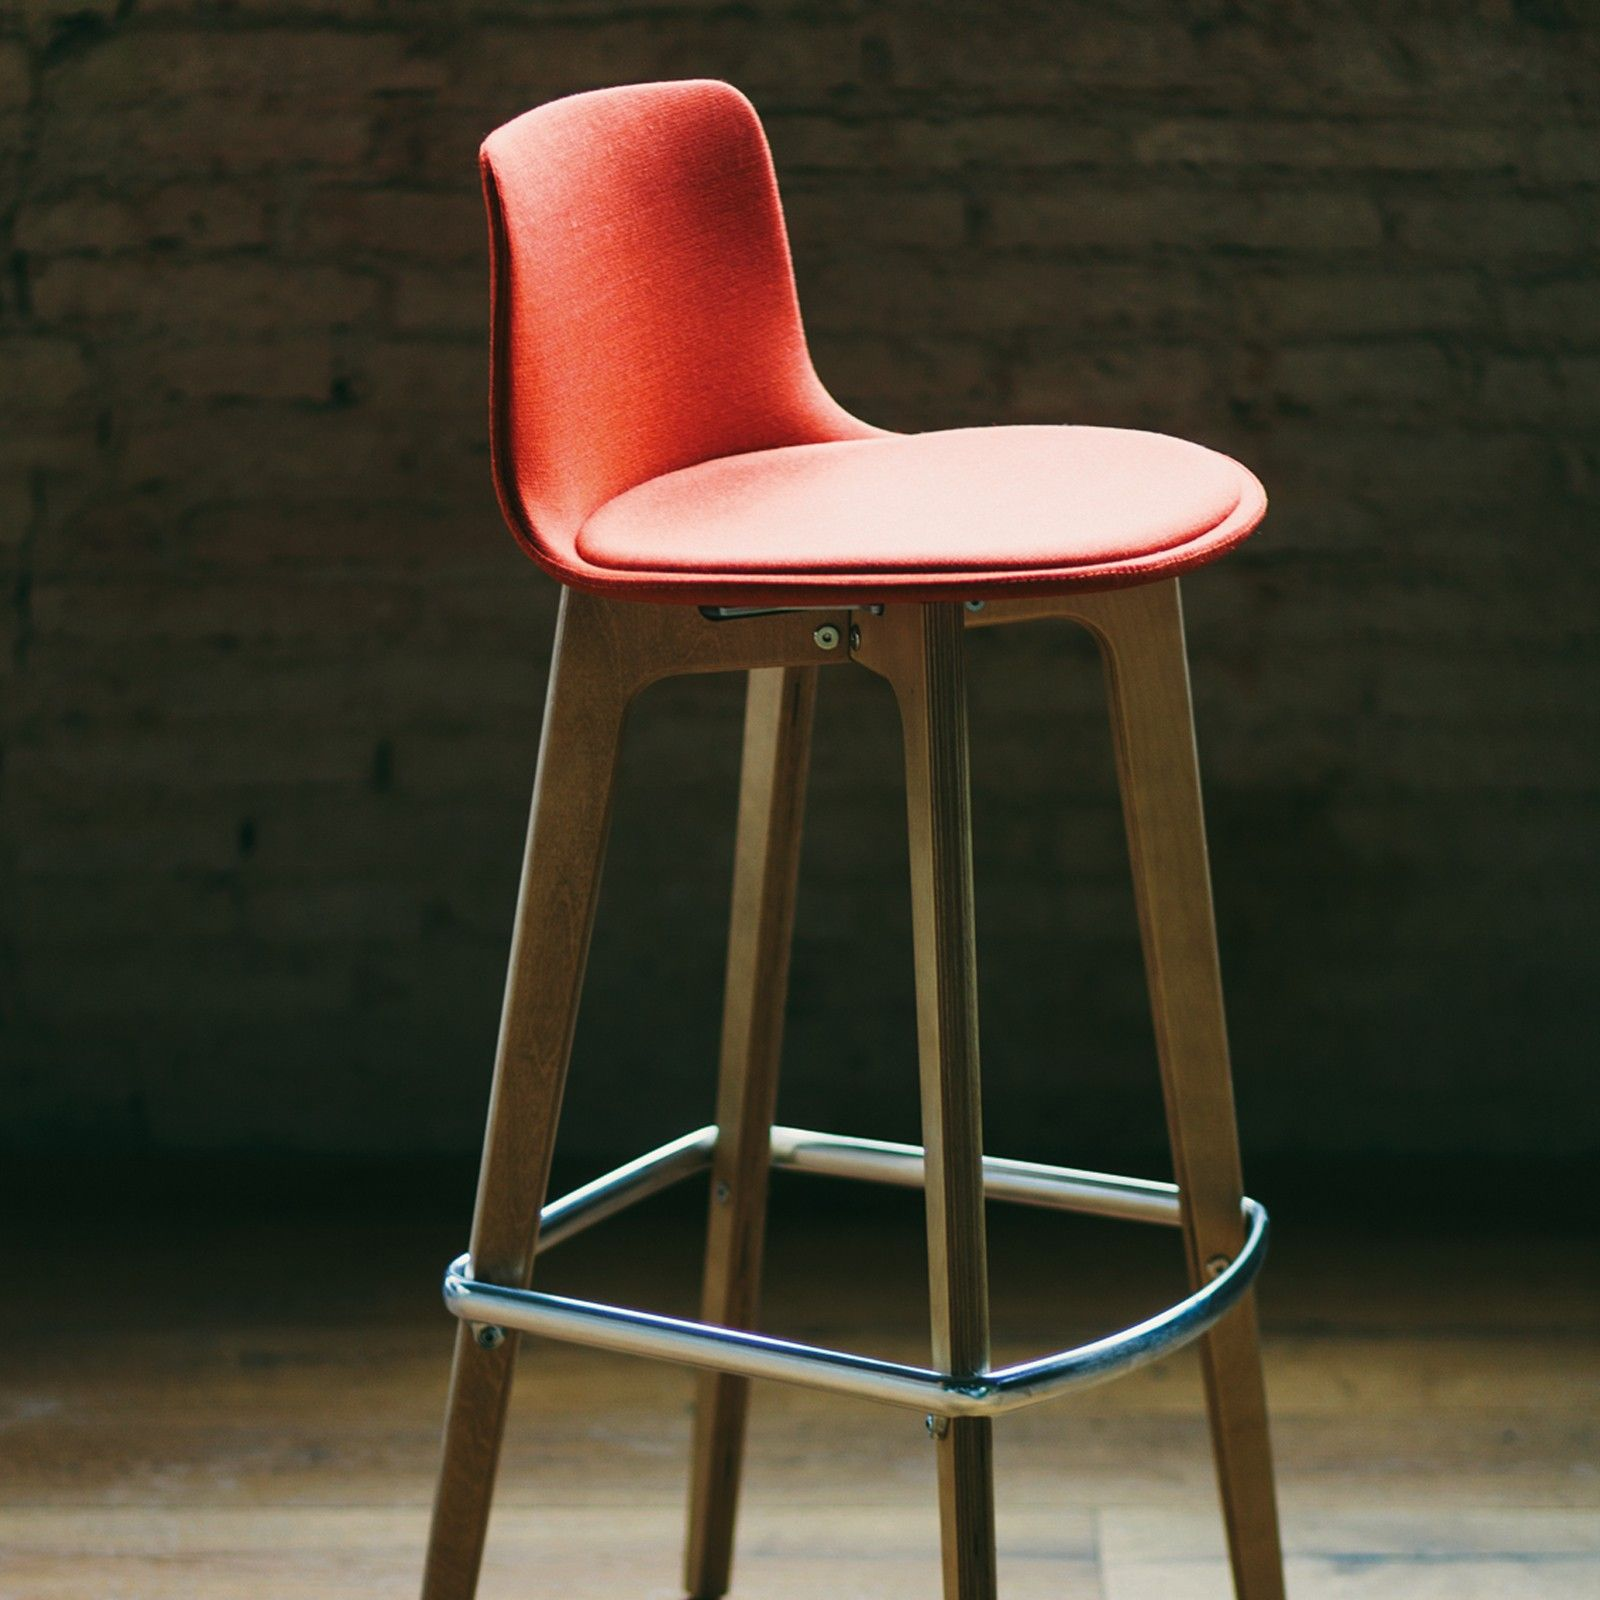 stools sydney furniture lottus wood ke zu furniture residential and contract